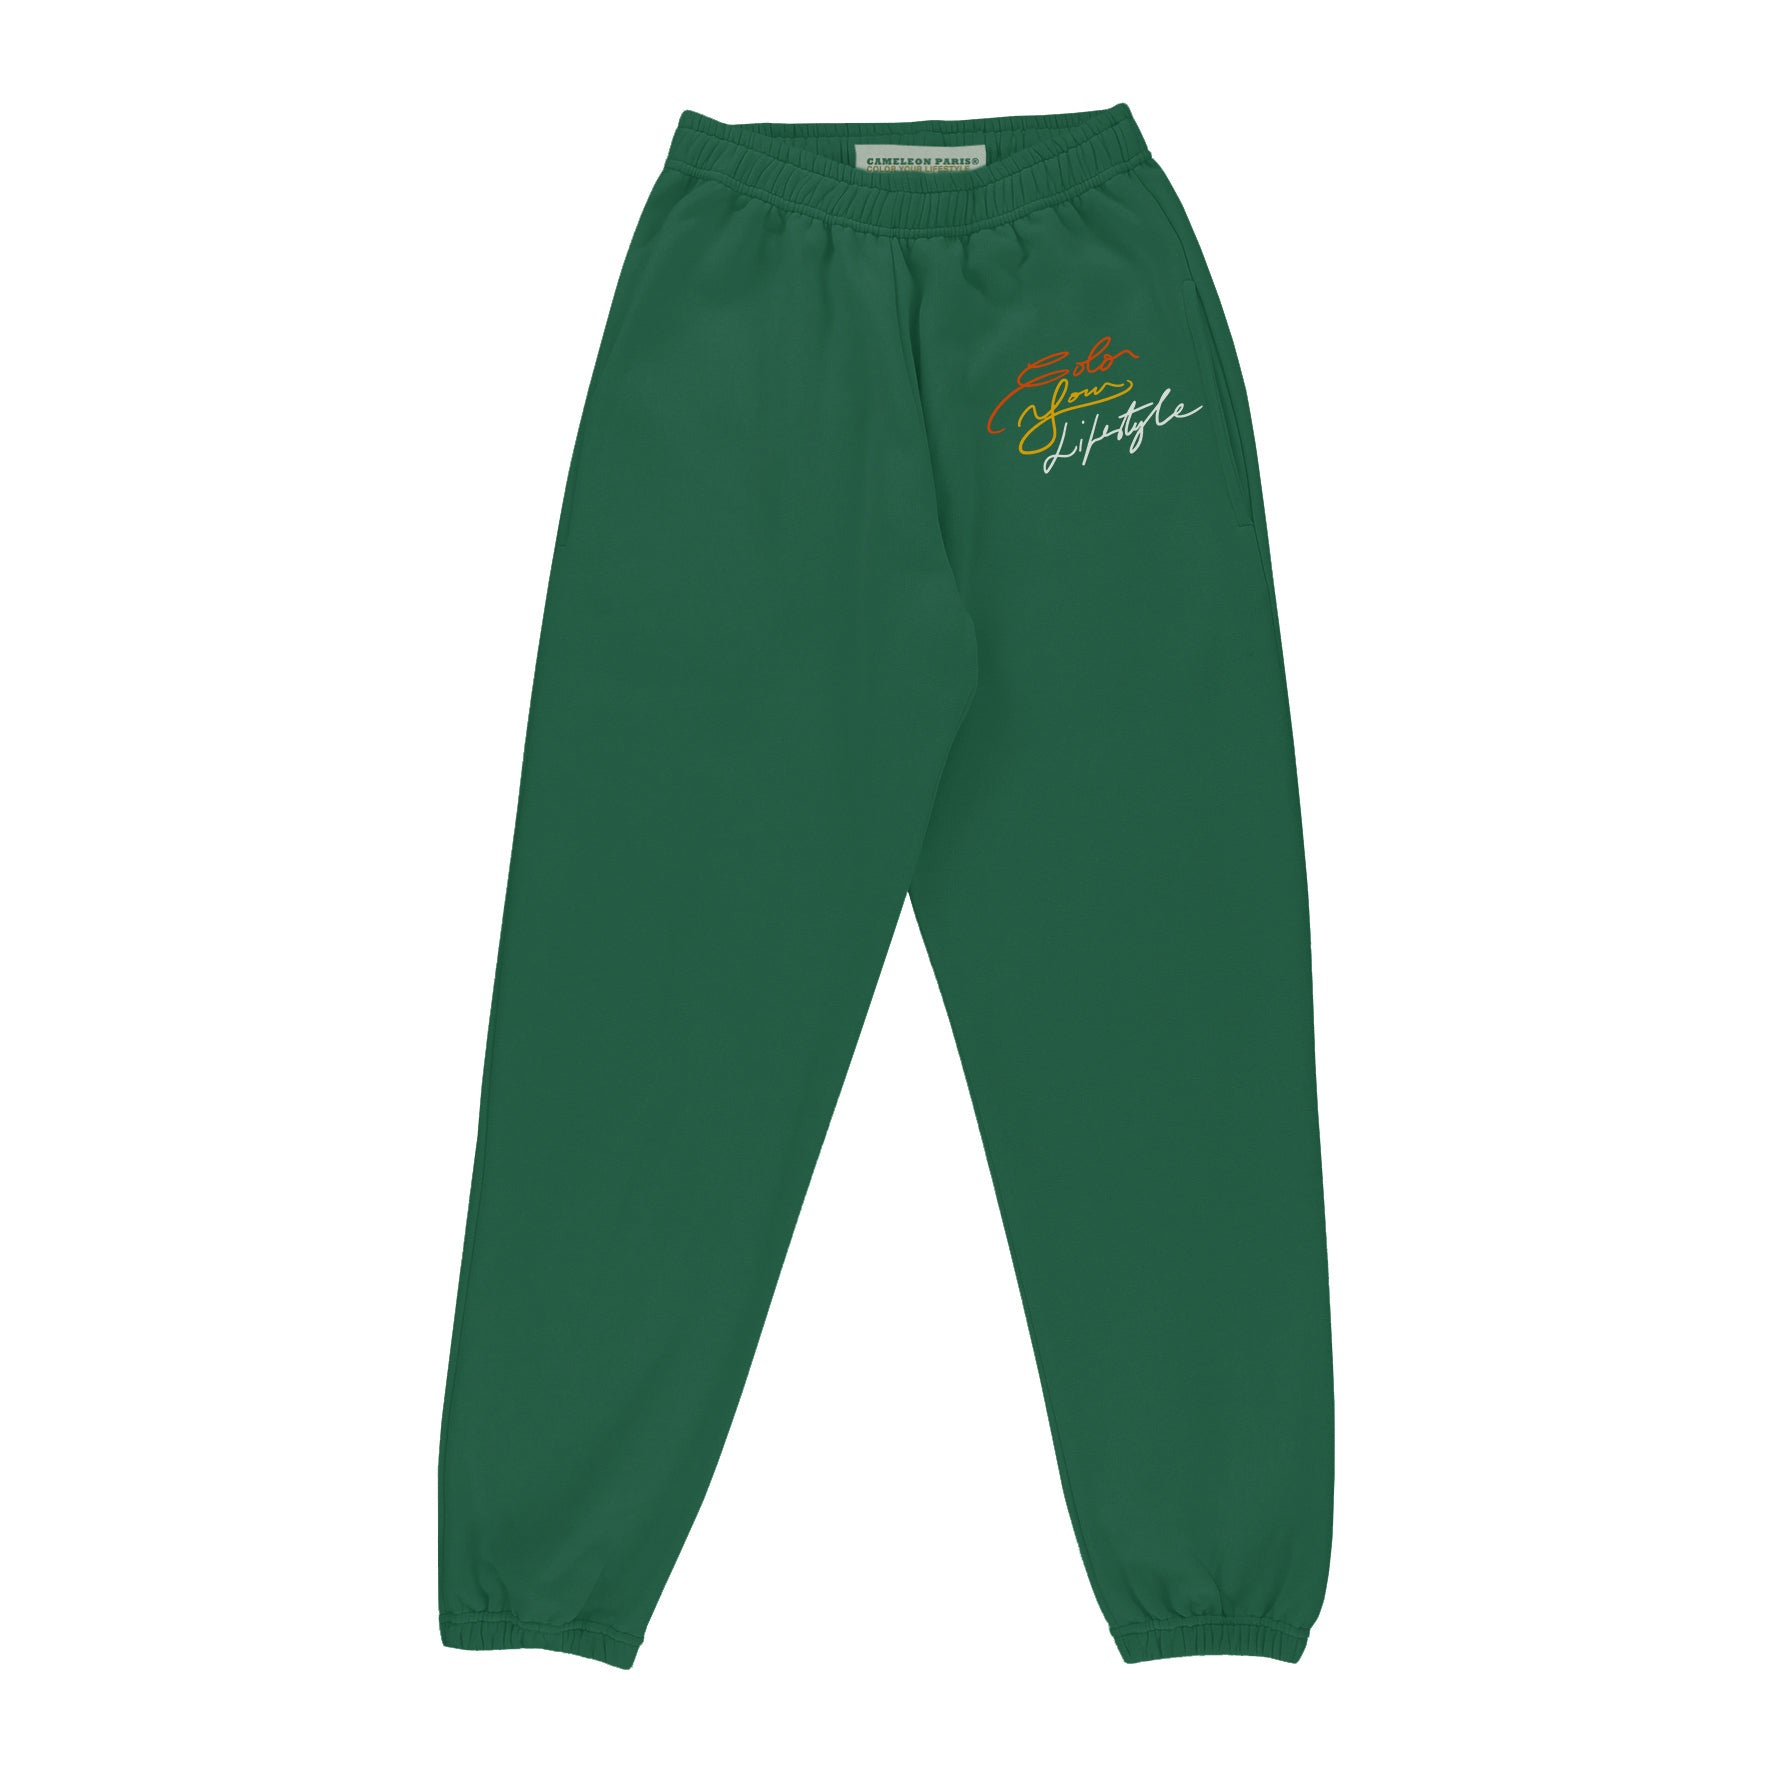 THE VINTAGE - GREEN SWEATPANT